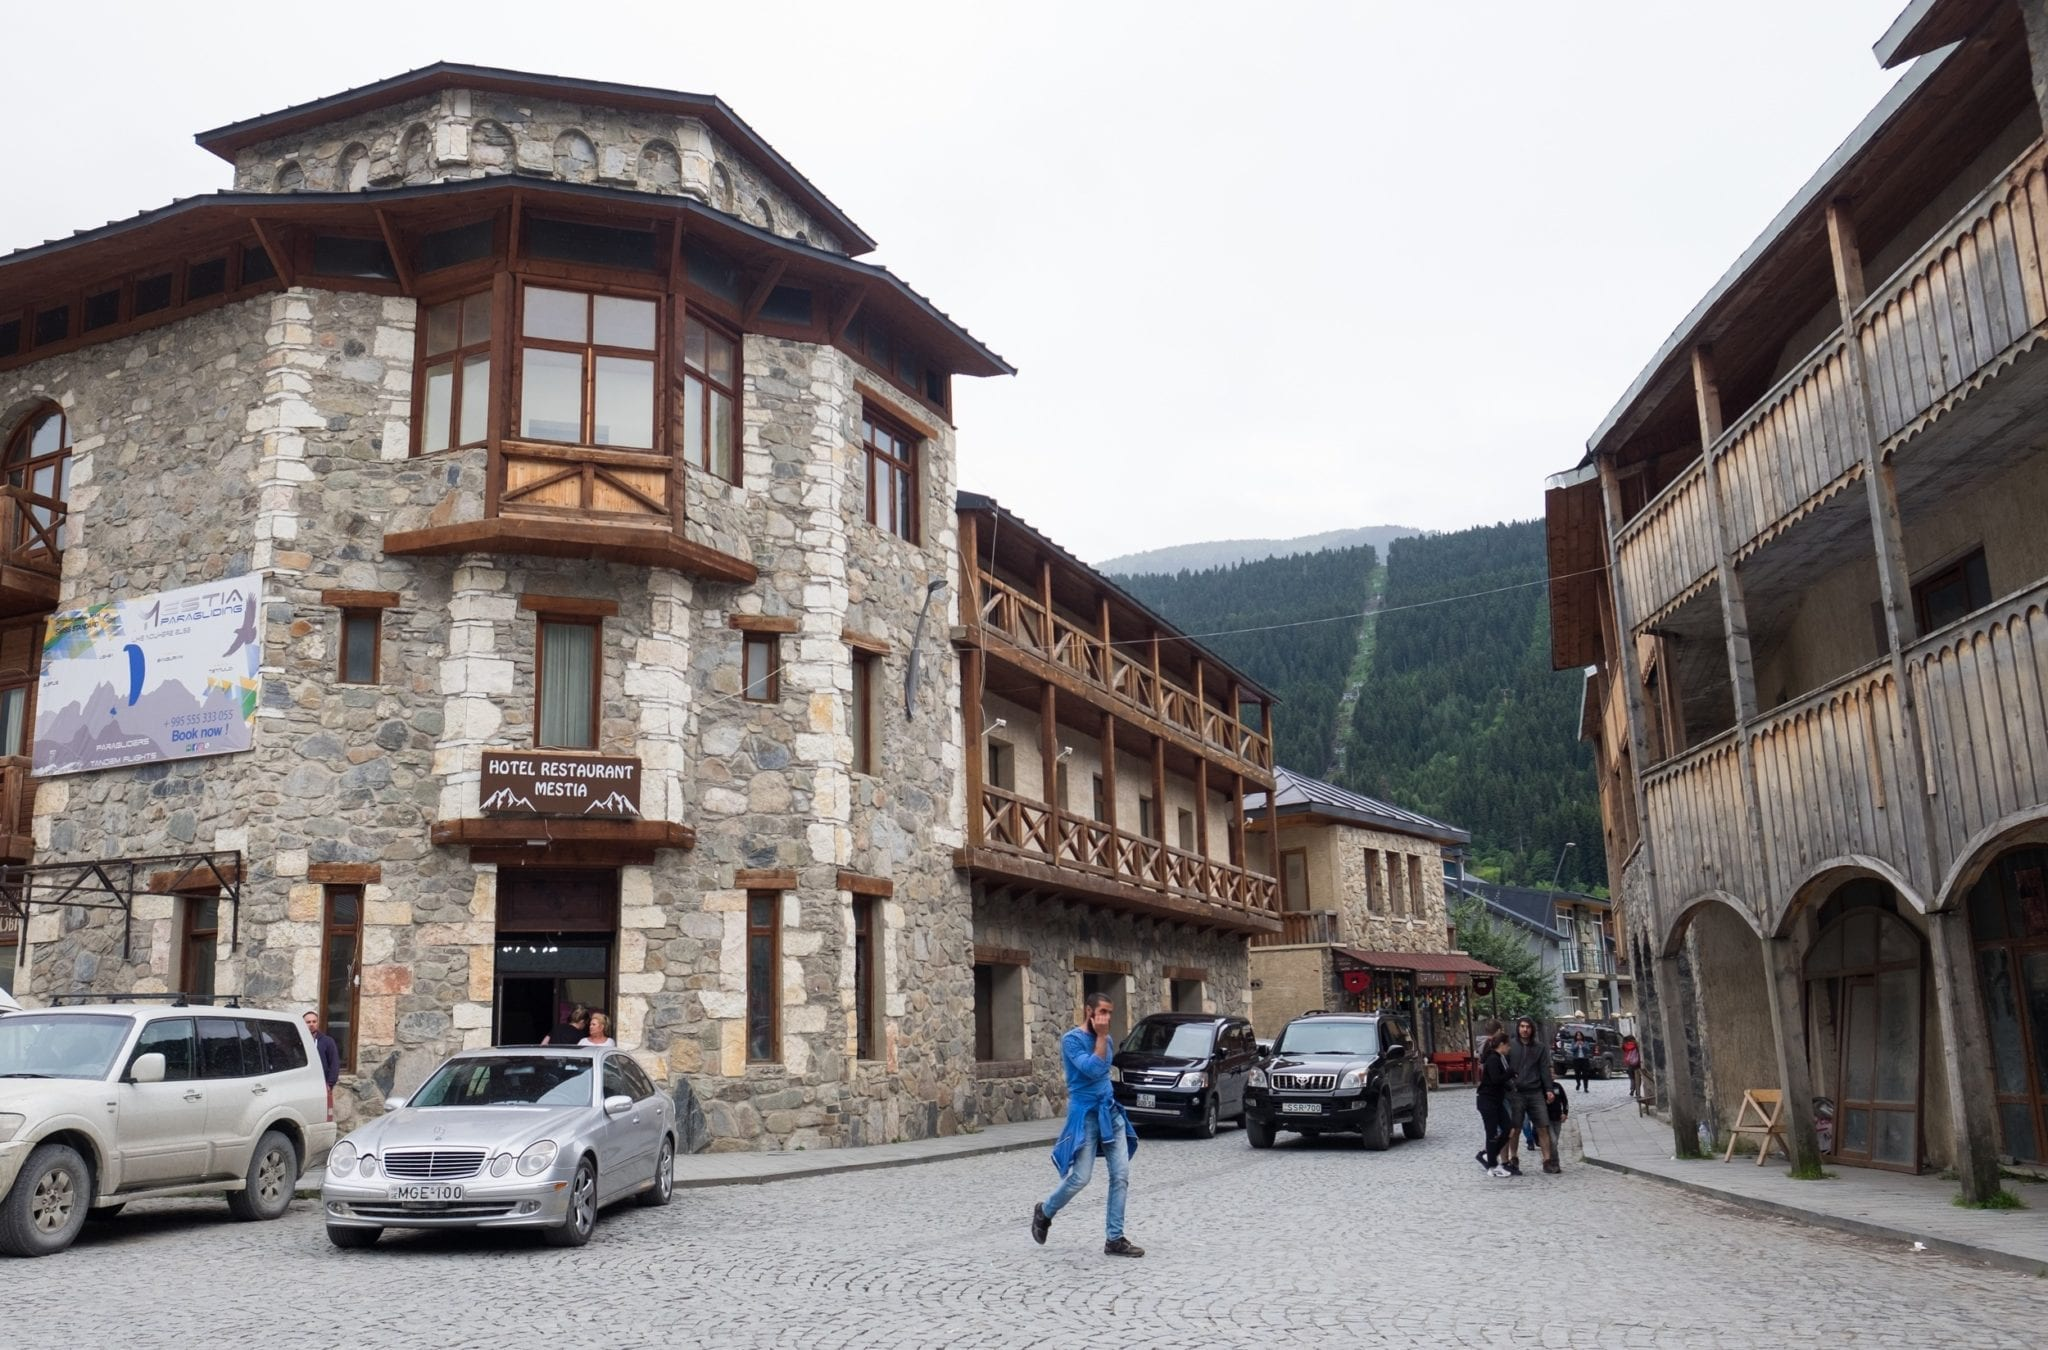 A man walking across the street surrounded by stone-and-wood buildings in Mestia town.